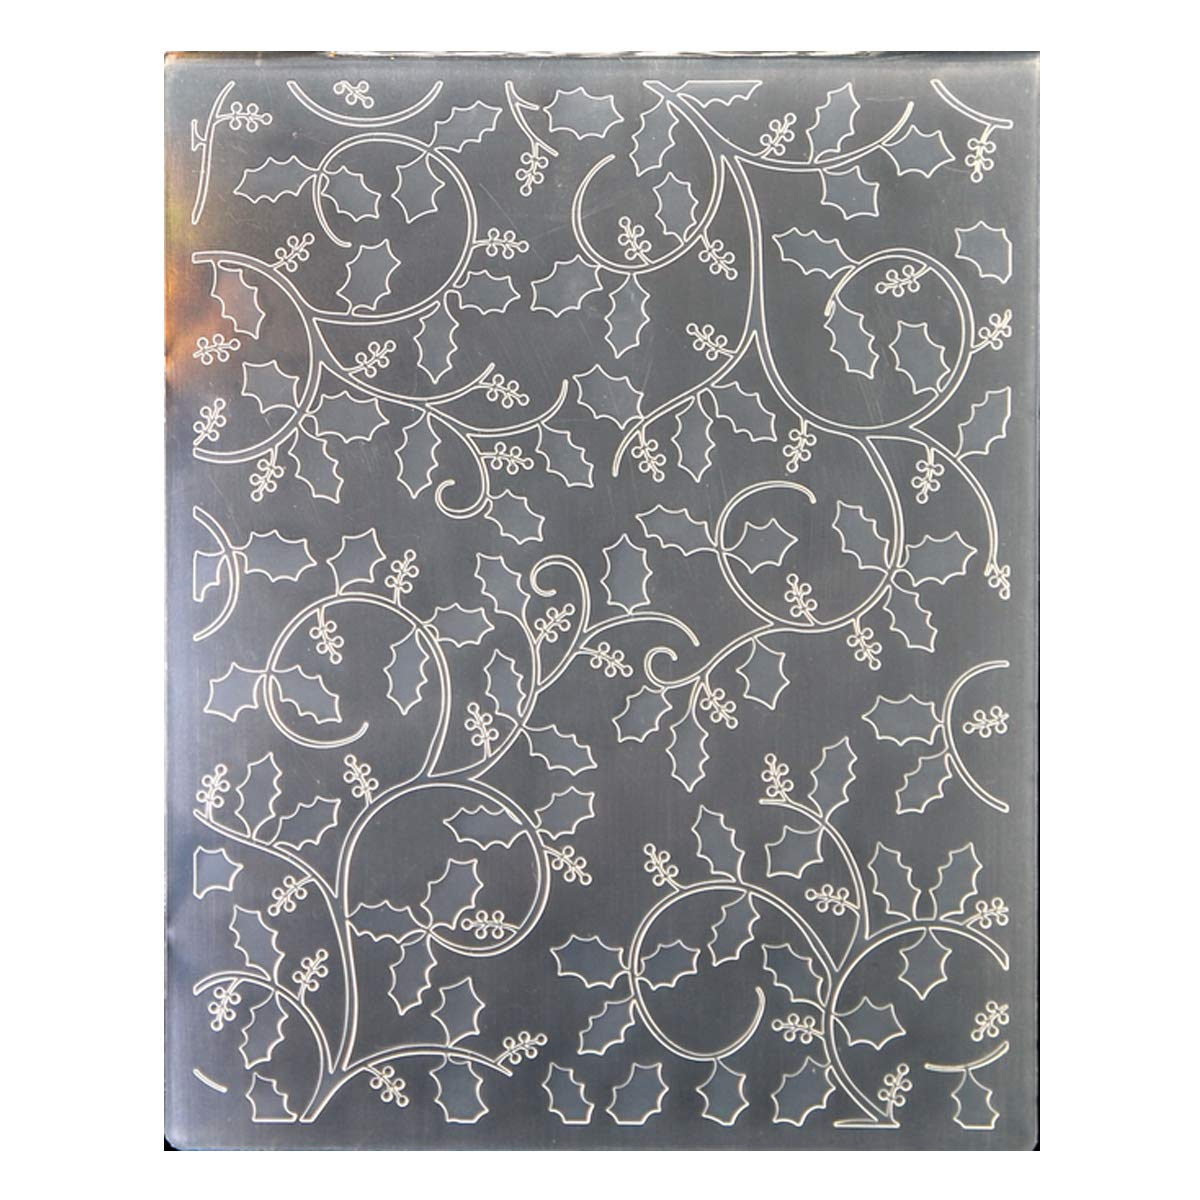 Kwan Crafts Christmas Berry Branch Plastic Embossing Folders for Card Making Scrapbooking and Other Paper Crafts, 12.1x15.2cm